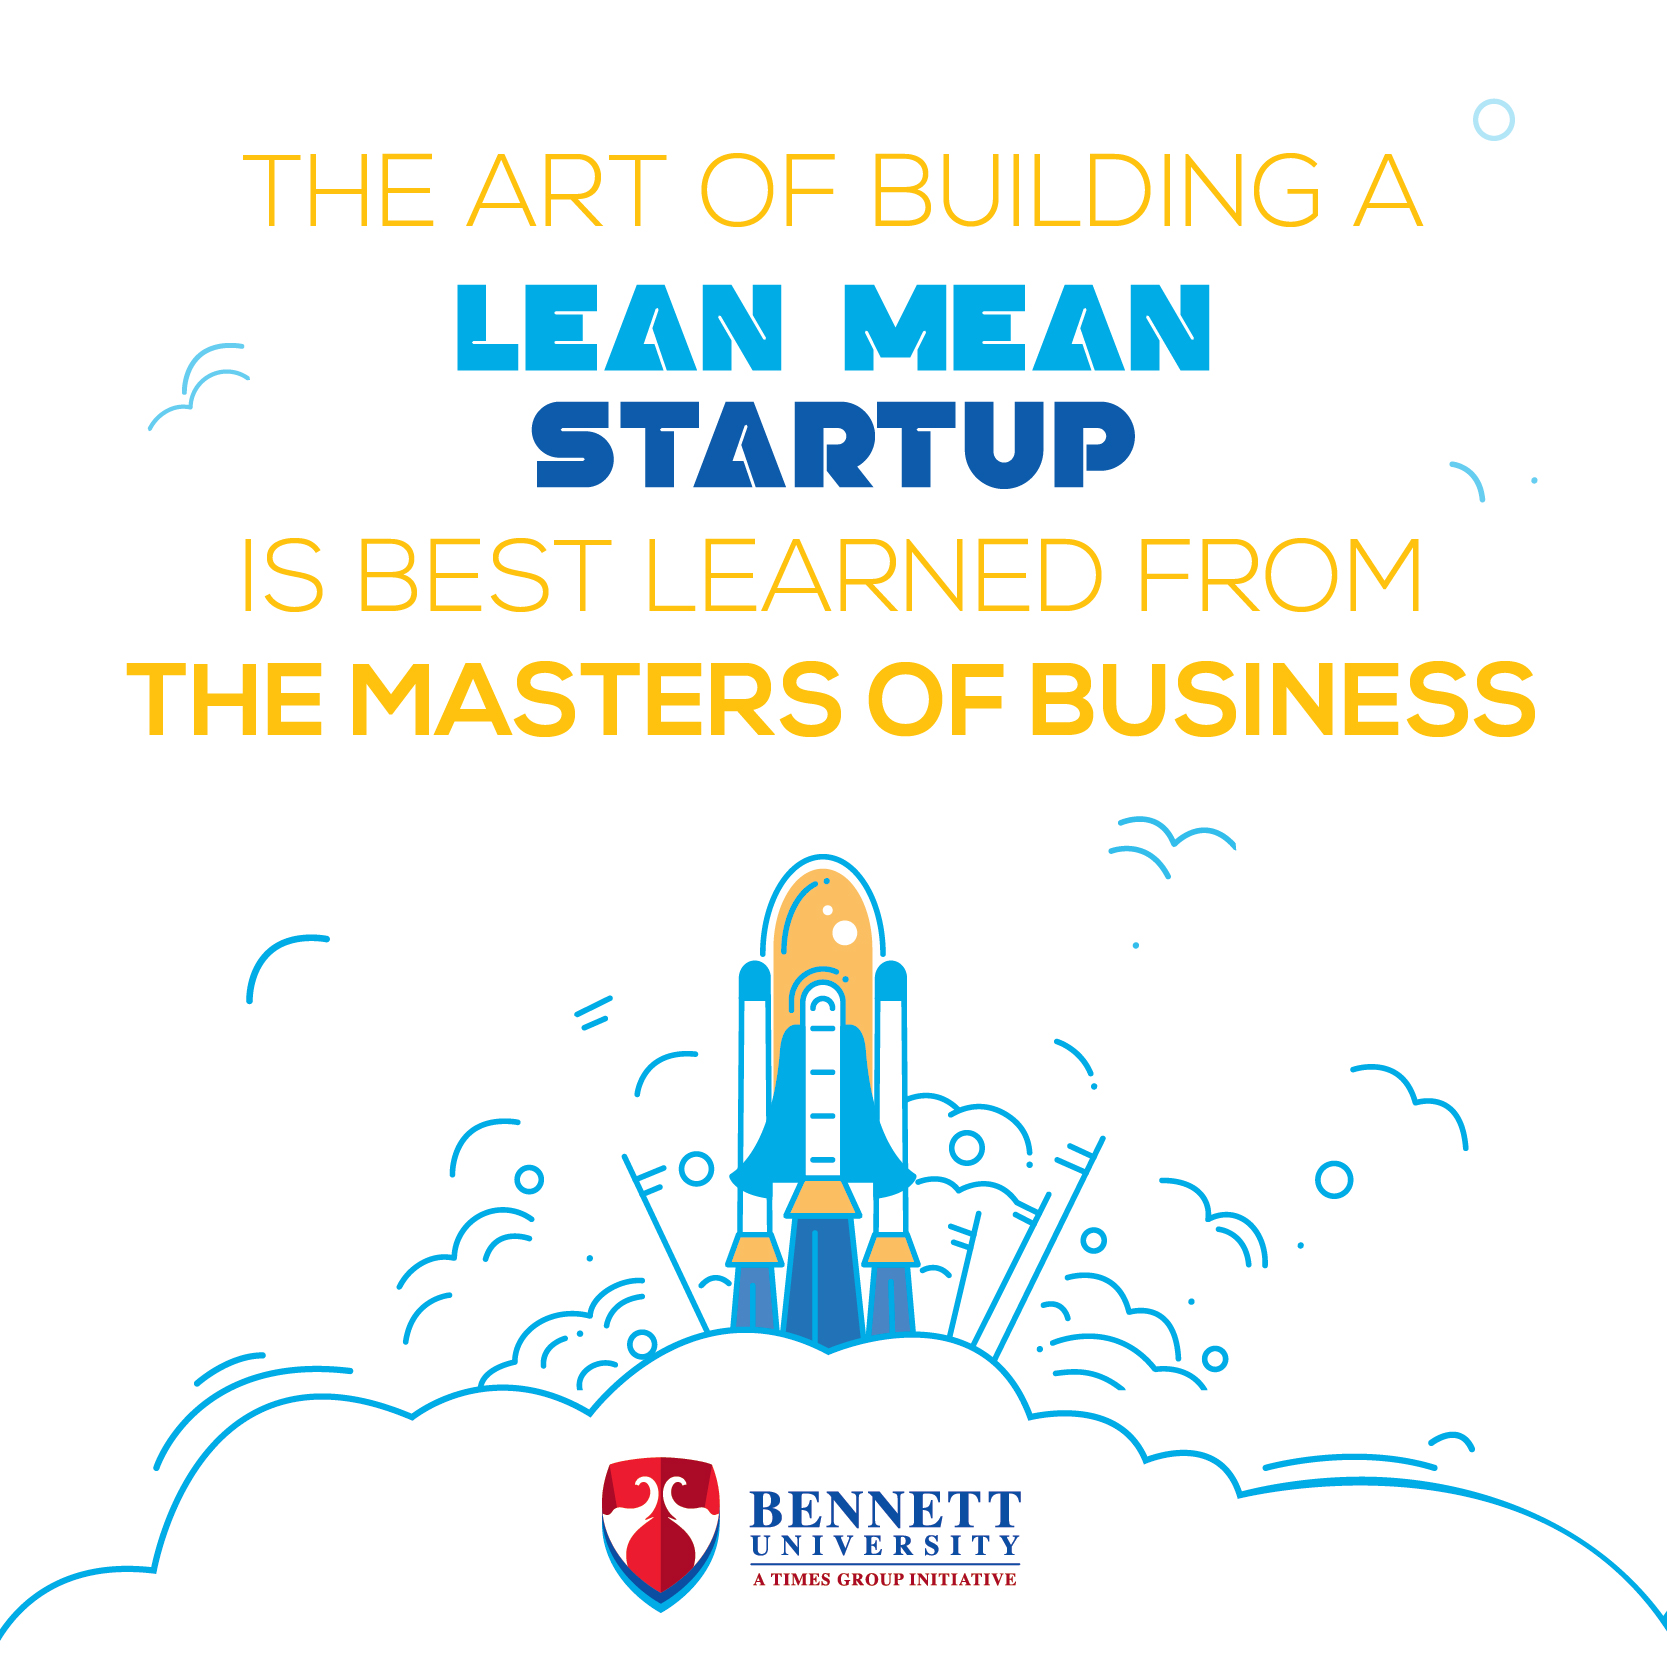 Lean Mean Start-up, Bennett University